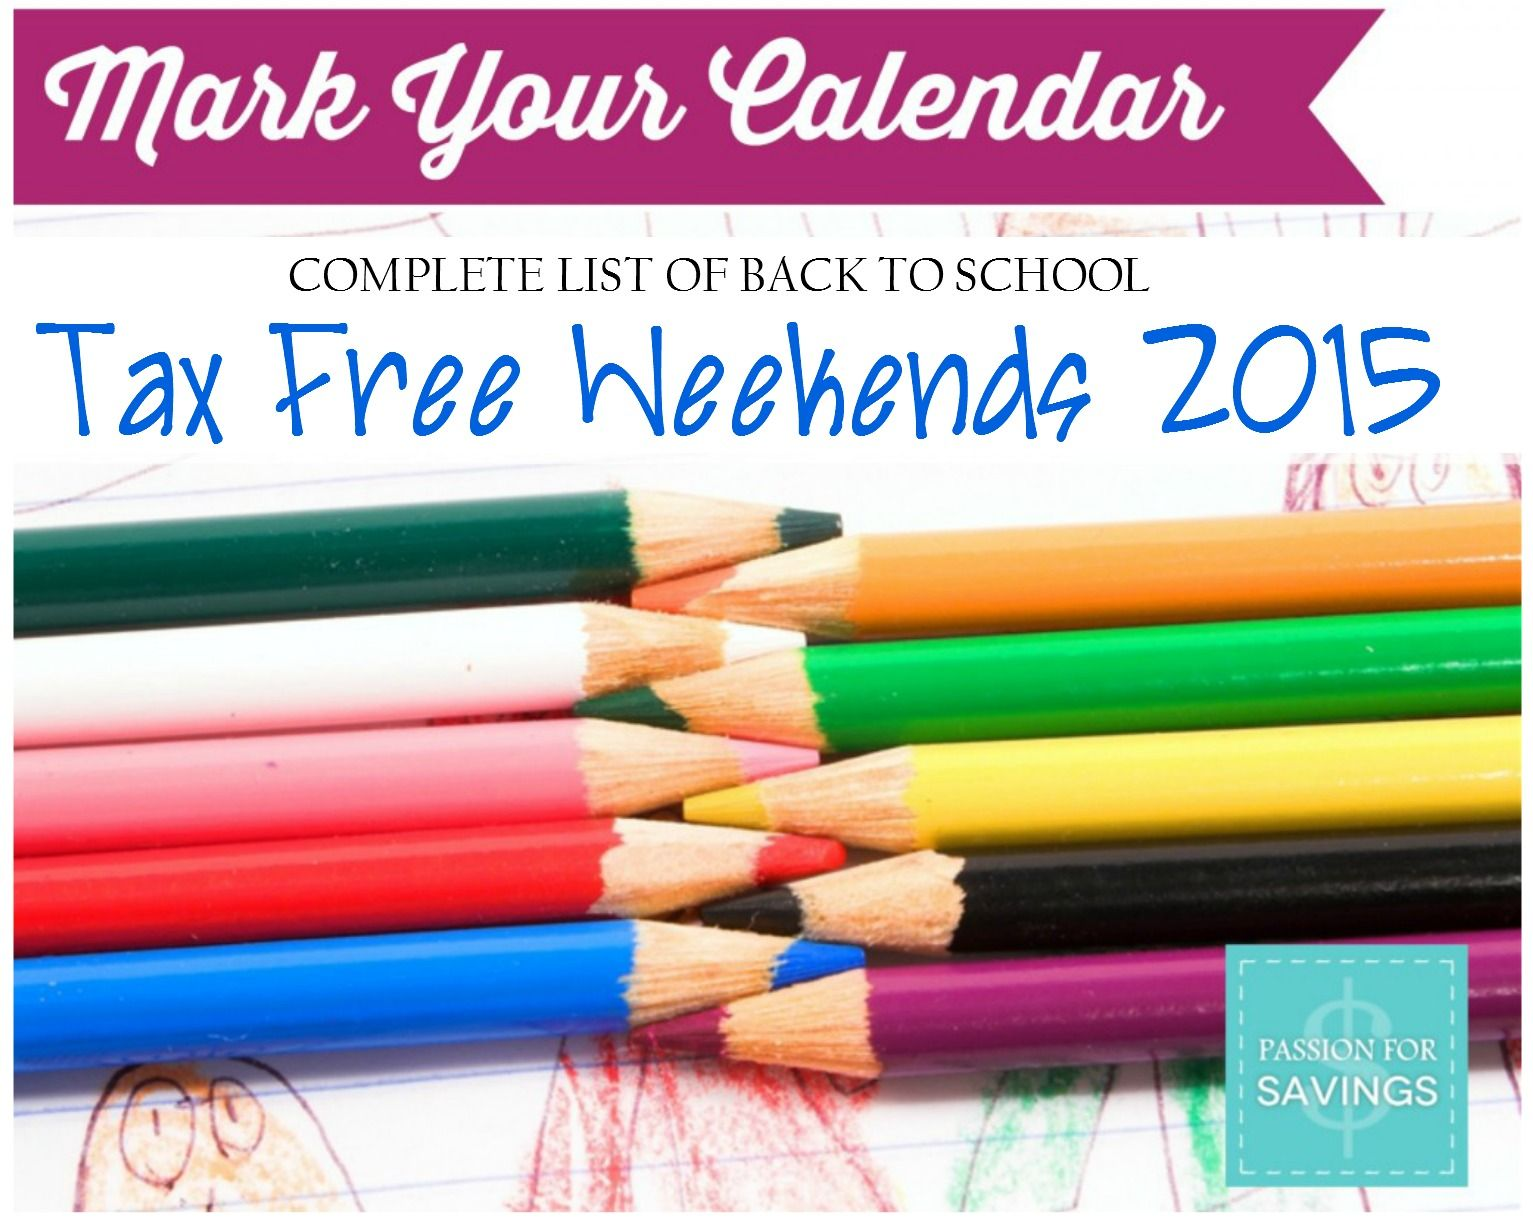 Current List Of Back To School Tax Free Weekend Holidays For 2015 Including Texas Florida Ark Free School Supplies Tax Free Weekend School Savings